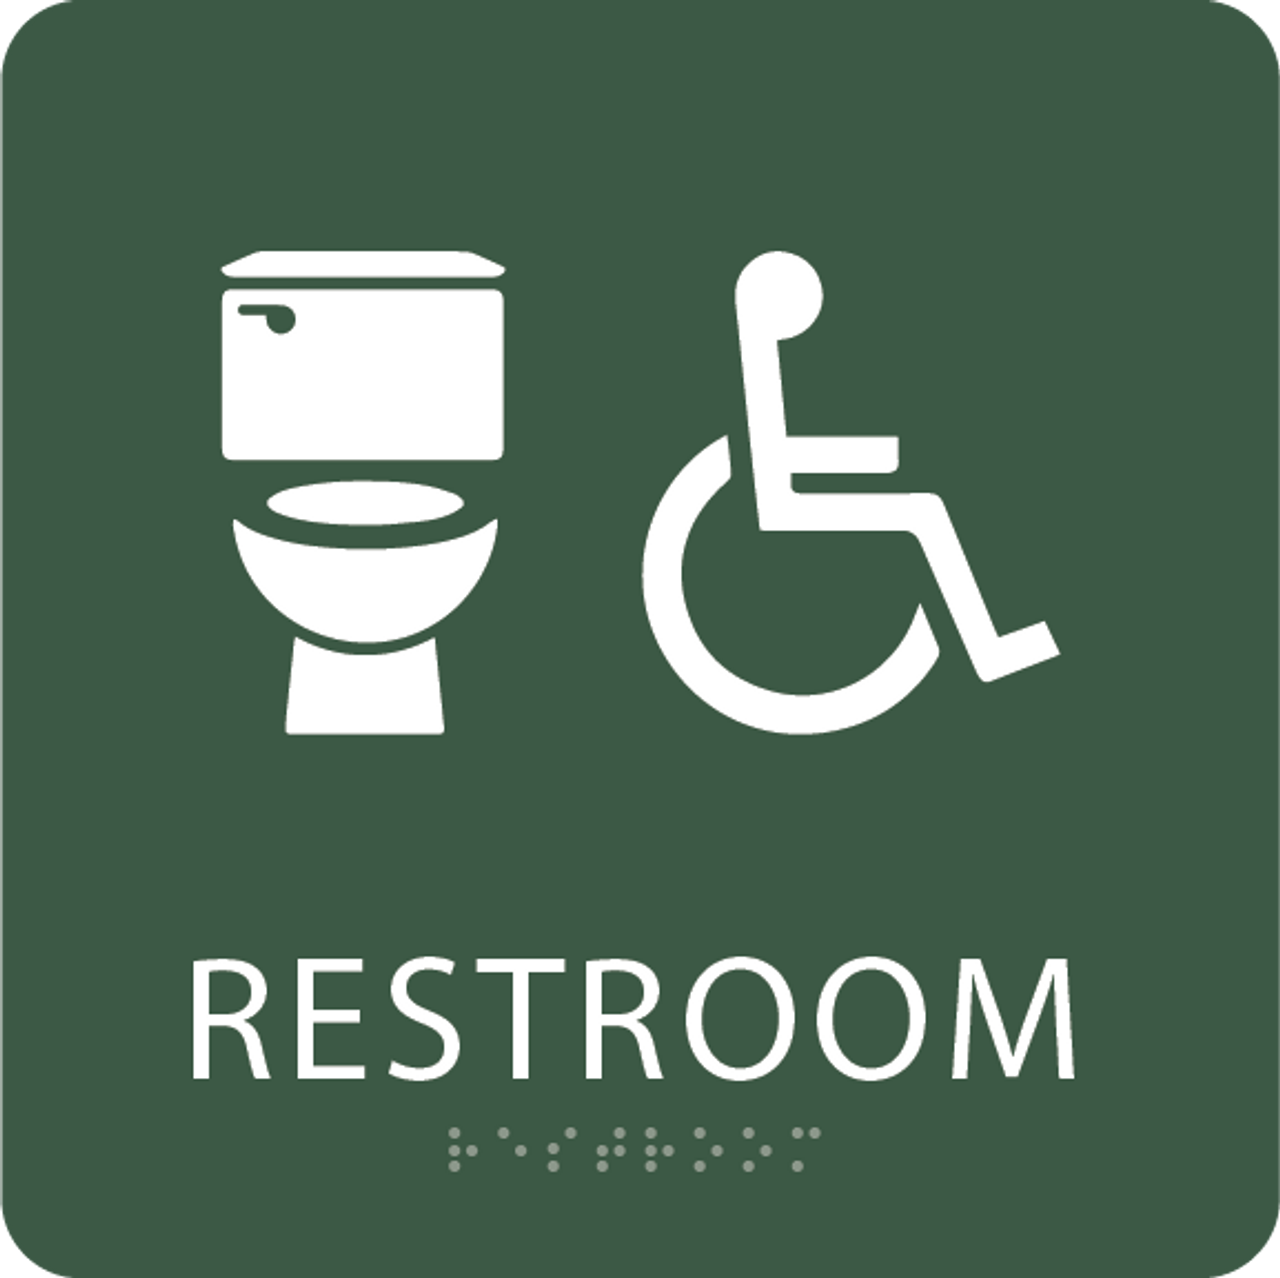 Spruce Accessible Toilet Sign